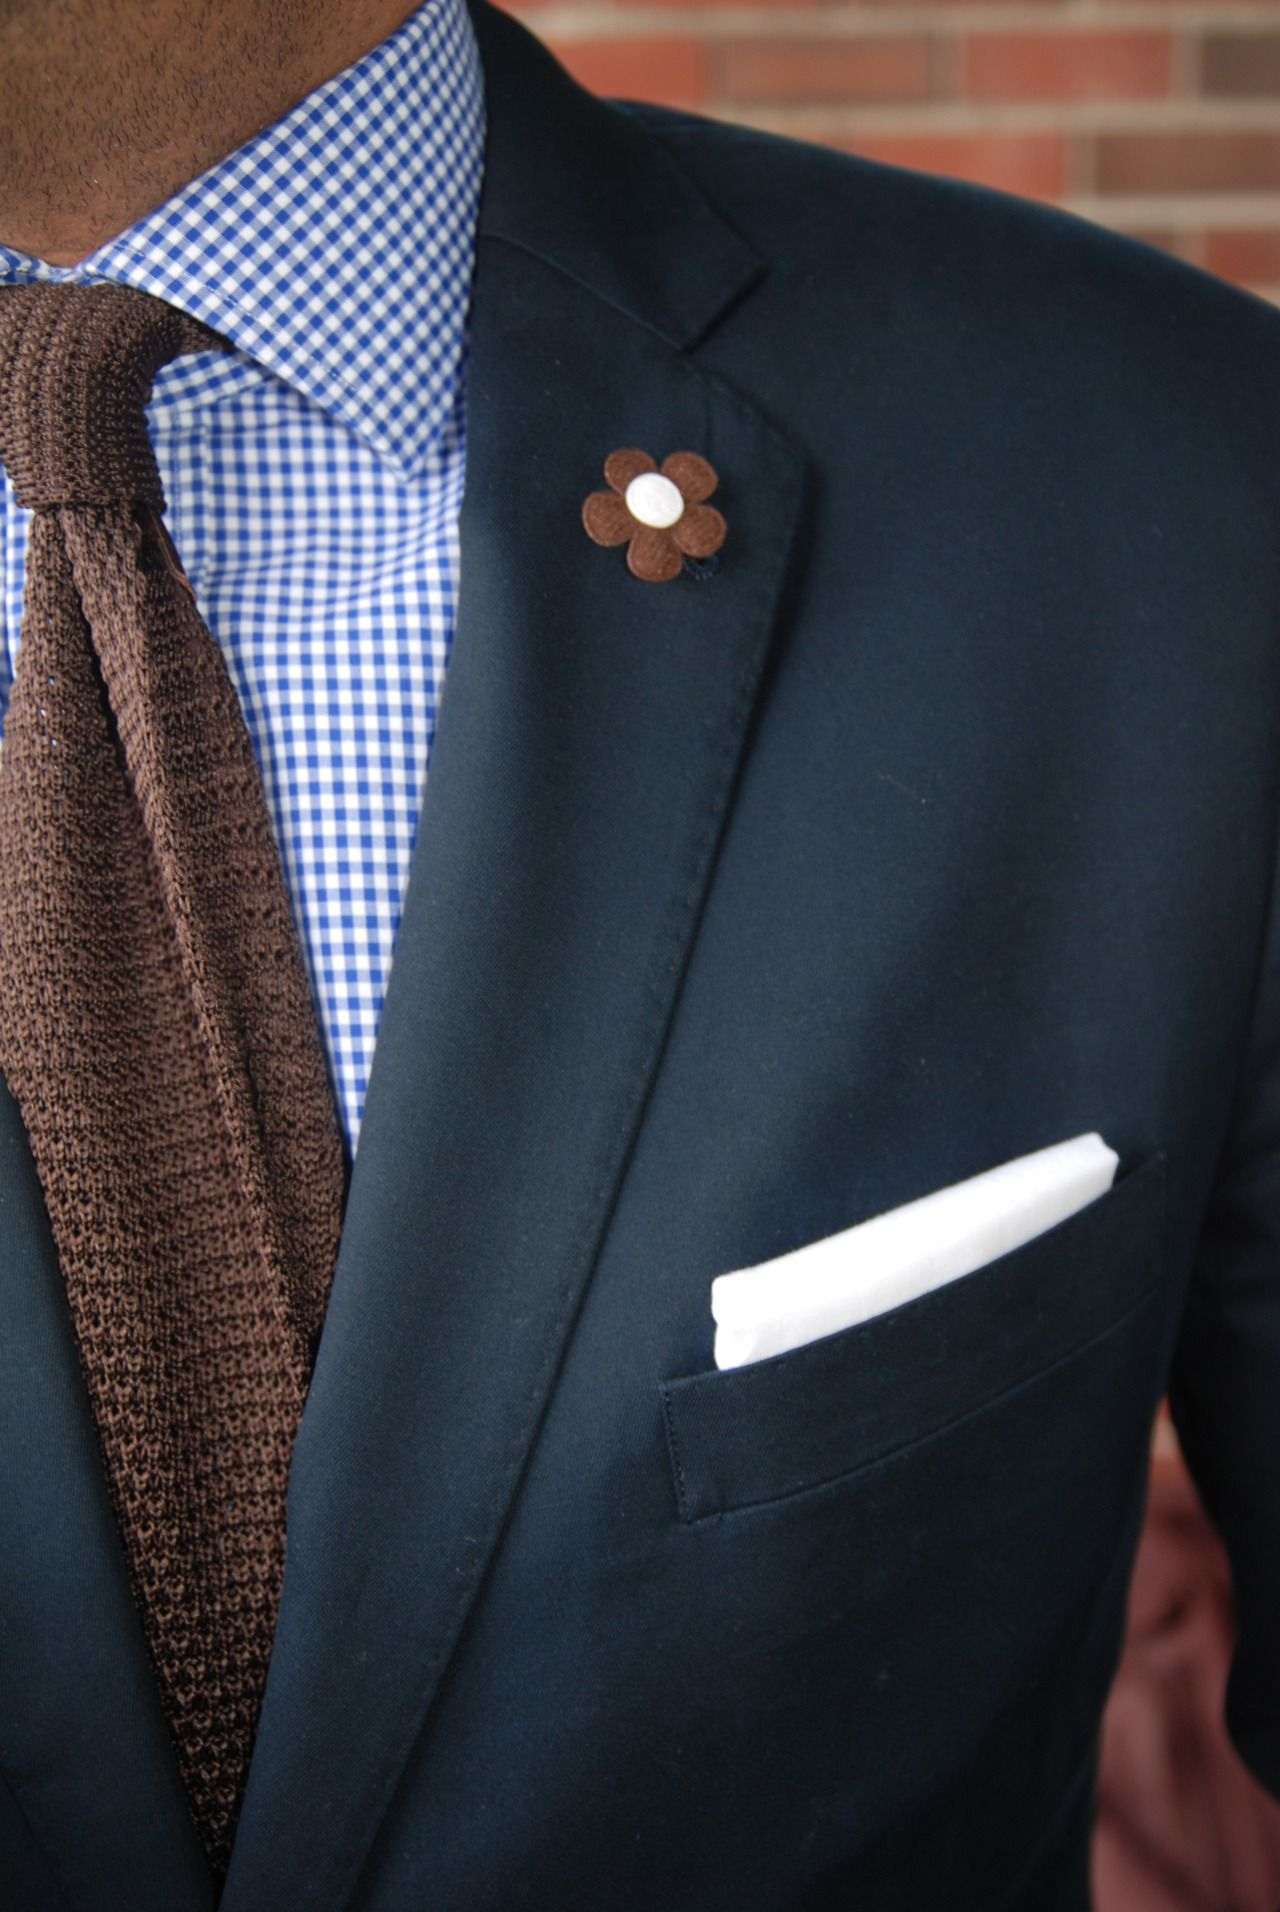 6ce17757c209 Blue and brown...always look clean and classy! Step up the tie game with  knitted ties! T.G.